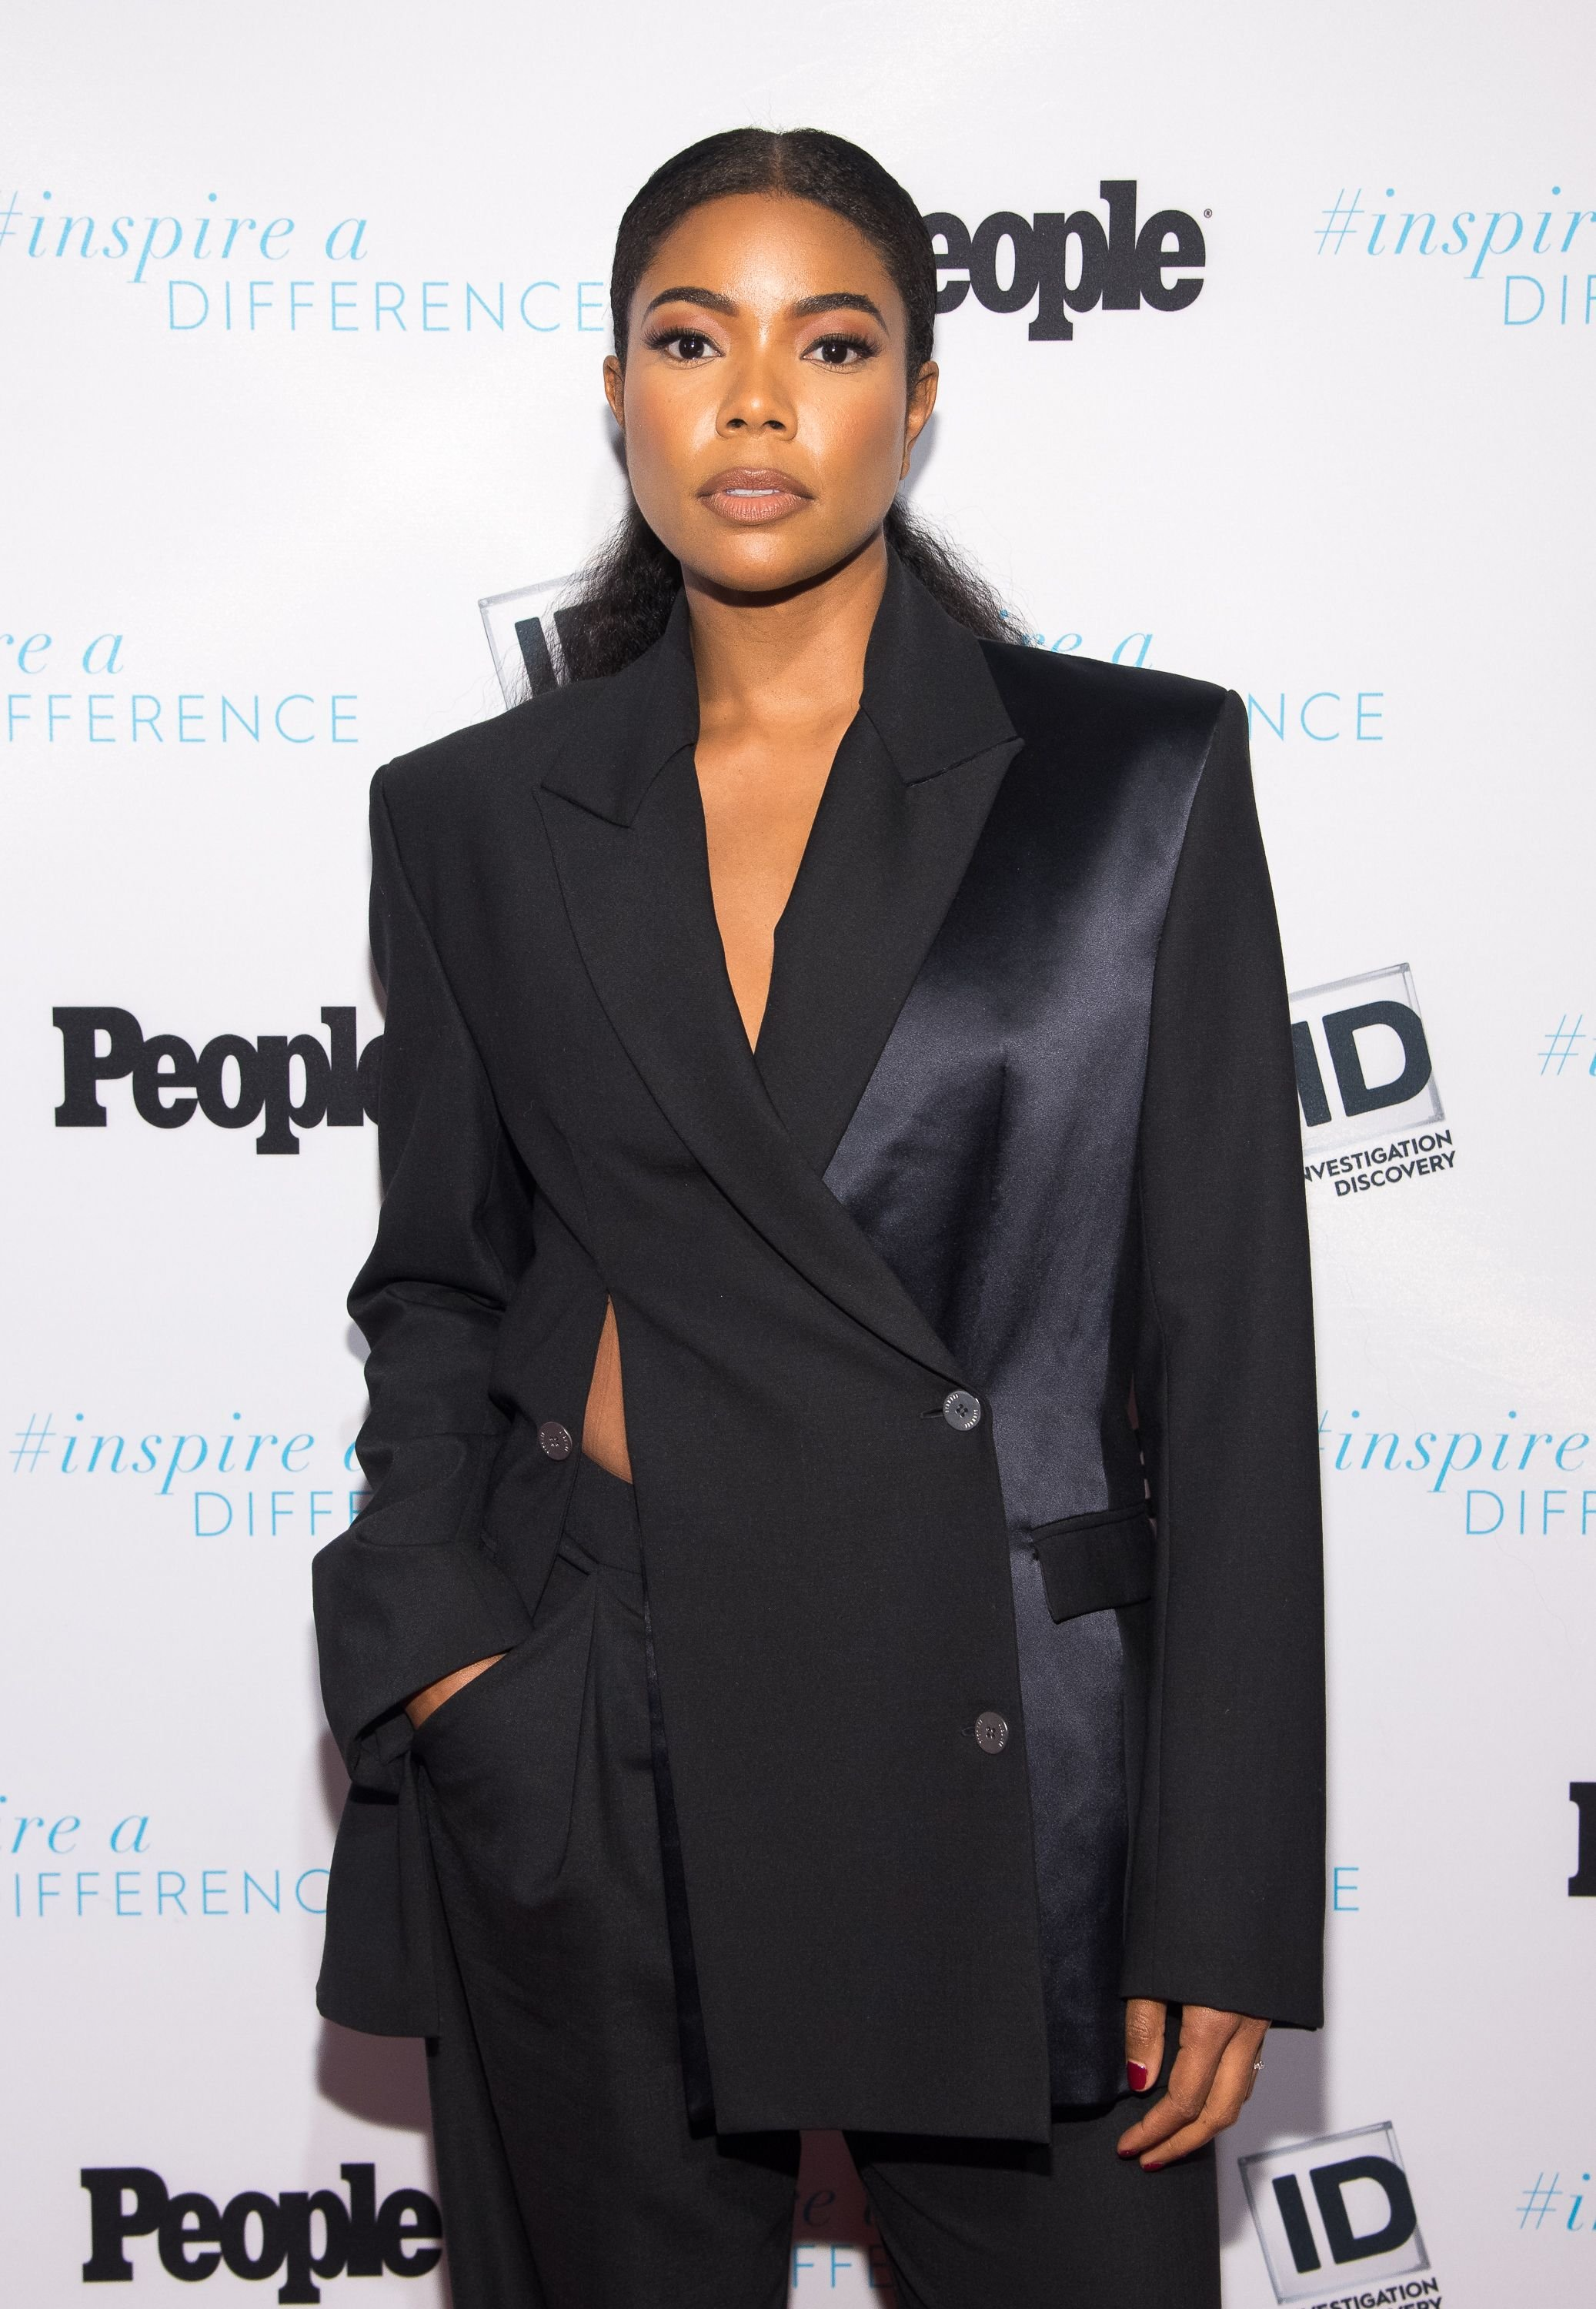 Gabrielle Union at the 2017 Inspire A Difference Honors event at Dream Hotel on November 2, 2017 in New York City | Photo: Getty Images